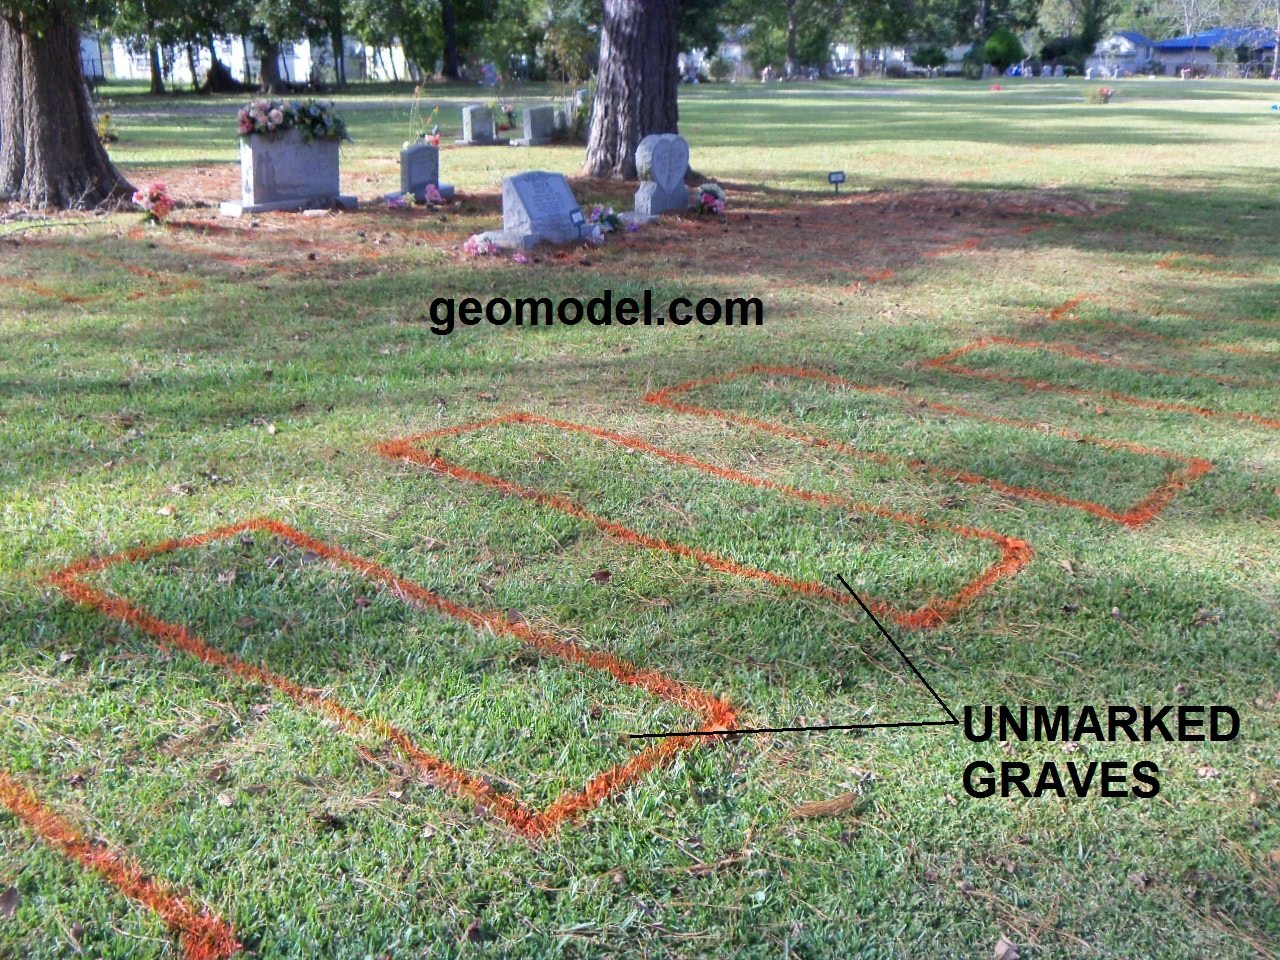 Cemetery_unmarked_graves7 to locate grave